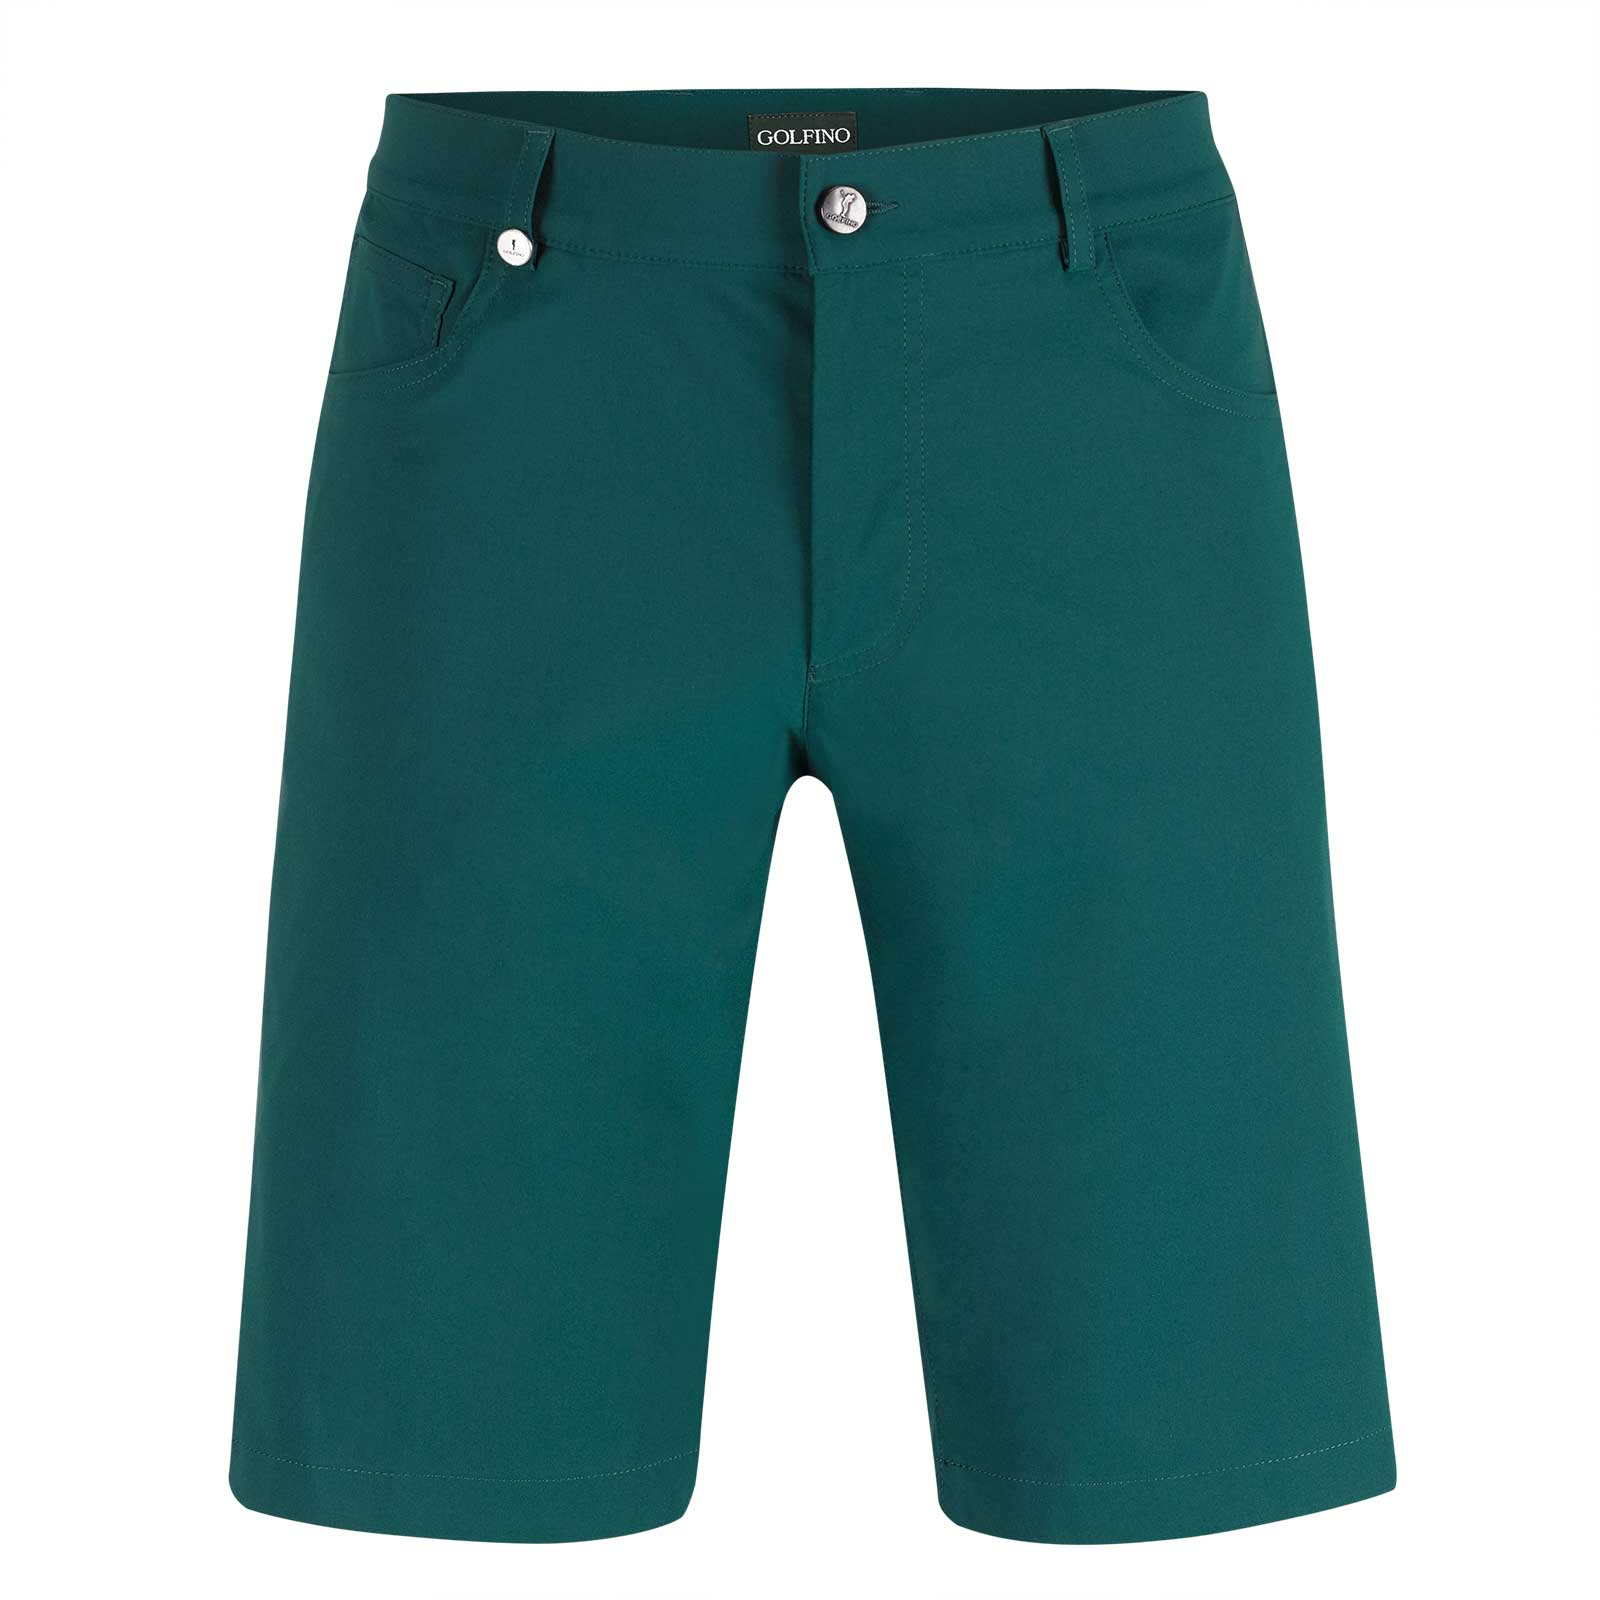 5-Pocket Techno Stretch Herren Golfbermuda